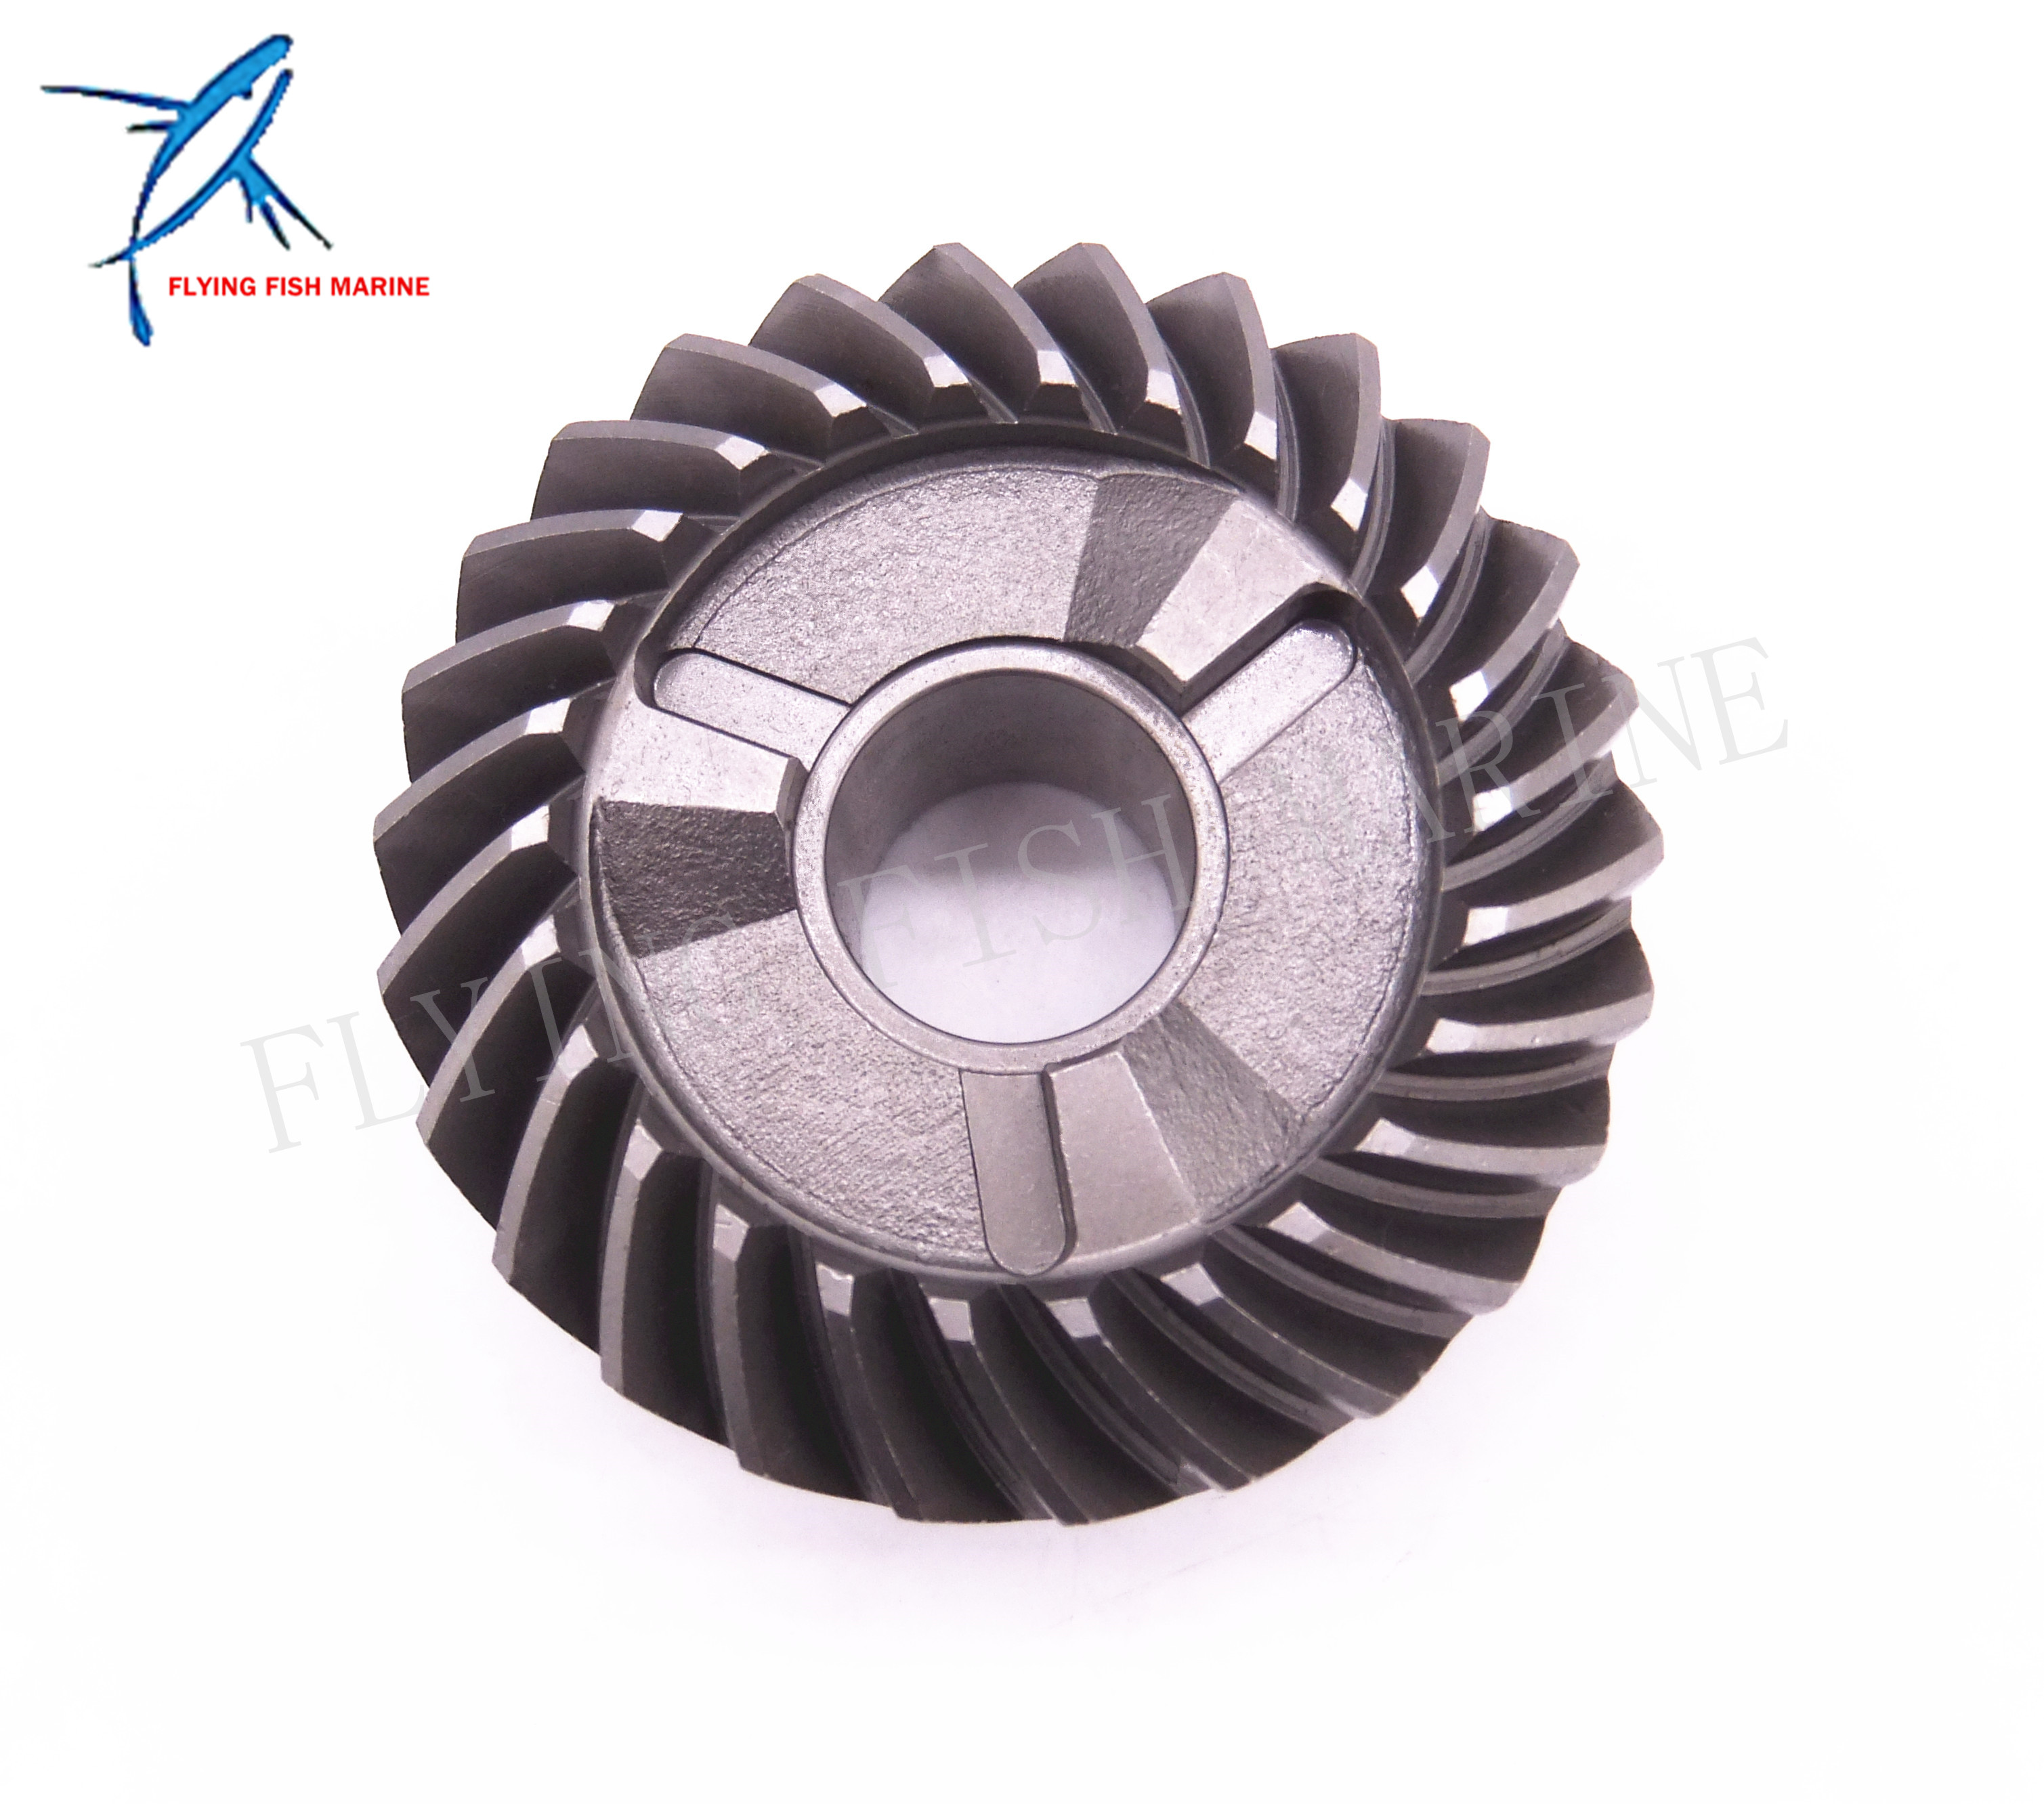 Automobiles & Motorcycles Sensible Reverse Gear T85-04000005 For Parsun Hdx Outboard Engine 2-stroke T75 T85 T90 Boat Motor Convenient To Cook